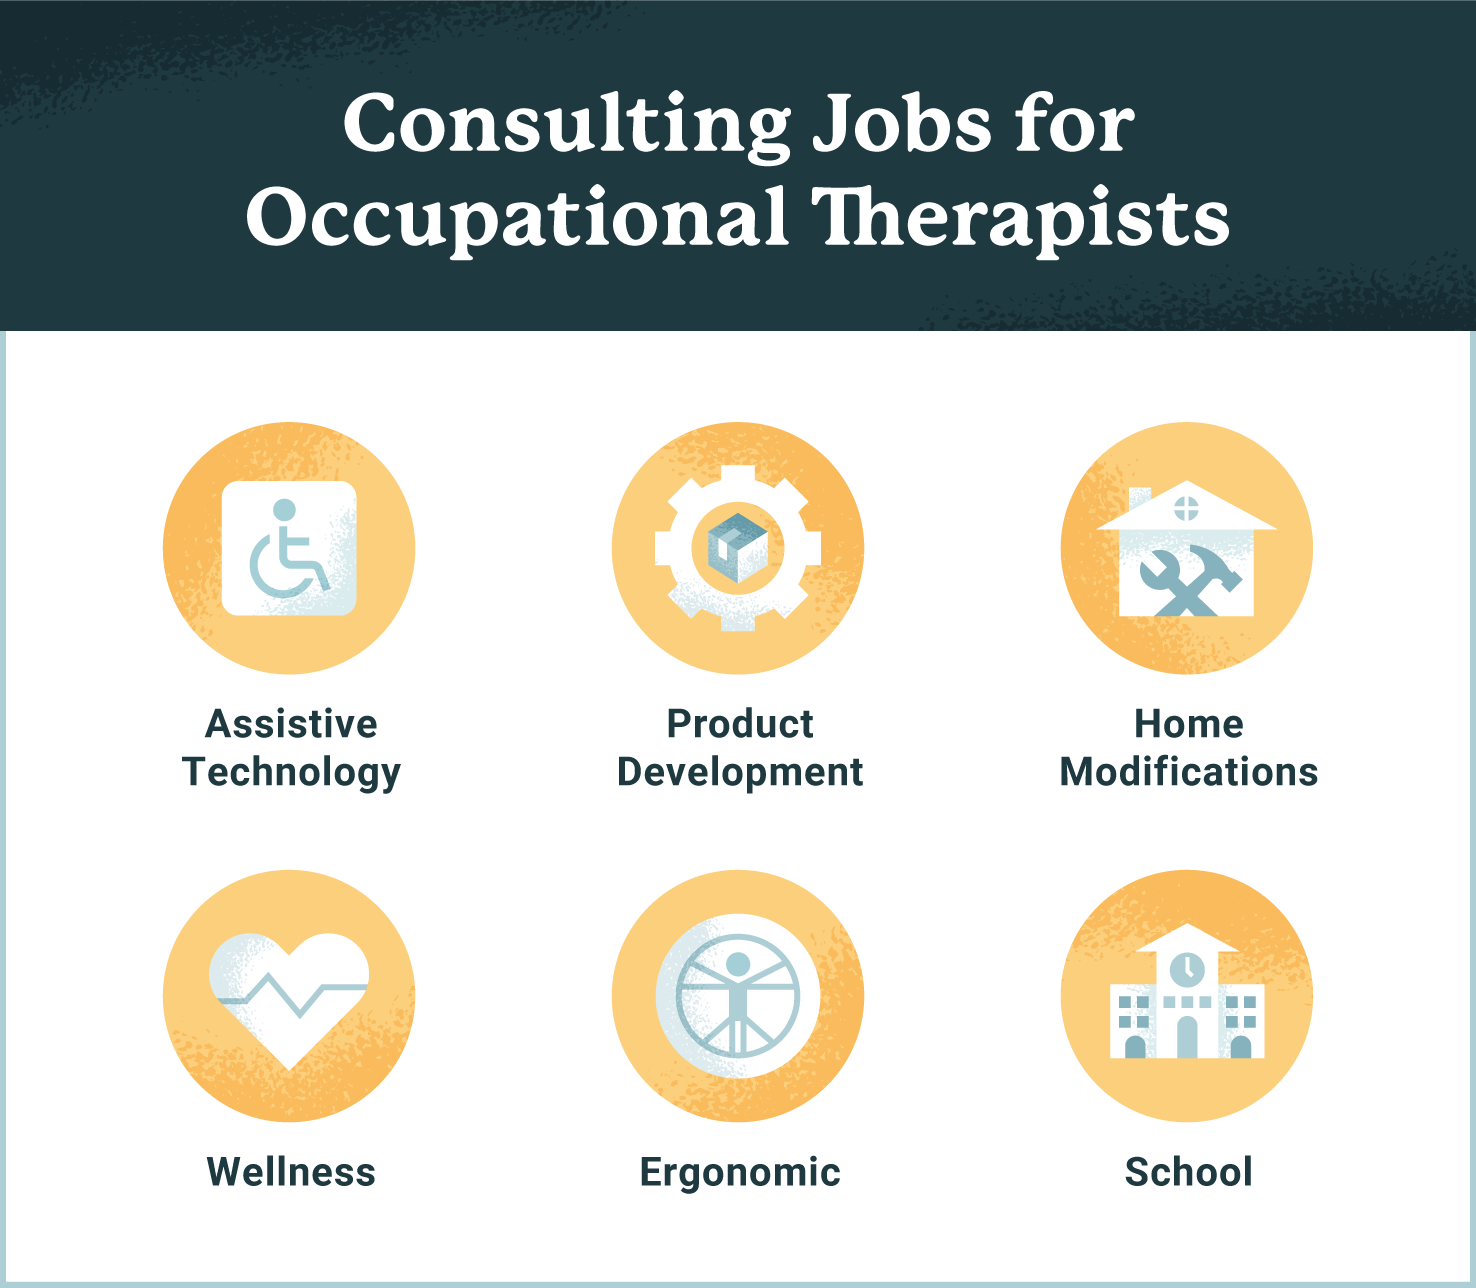 chart showing consulting jobs for occupational therapists